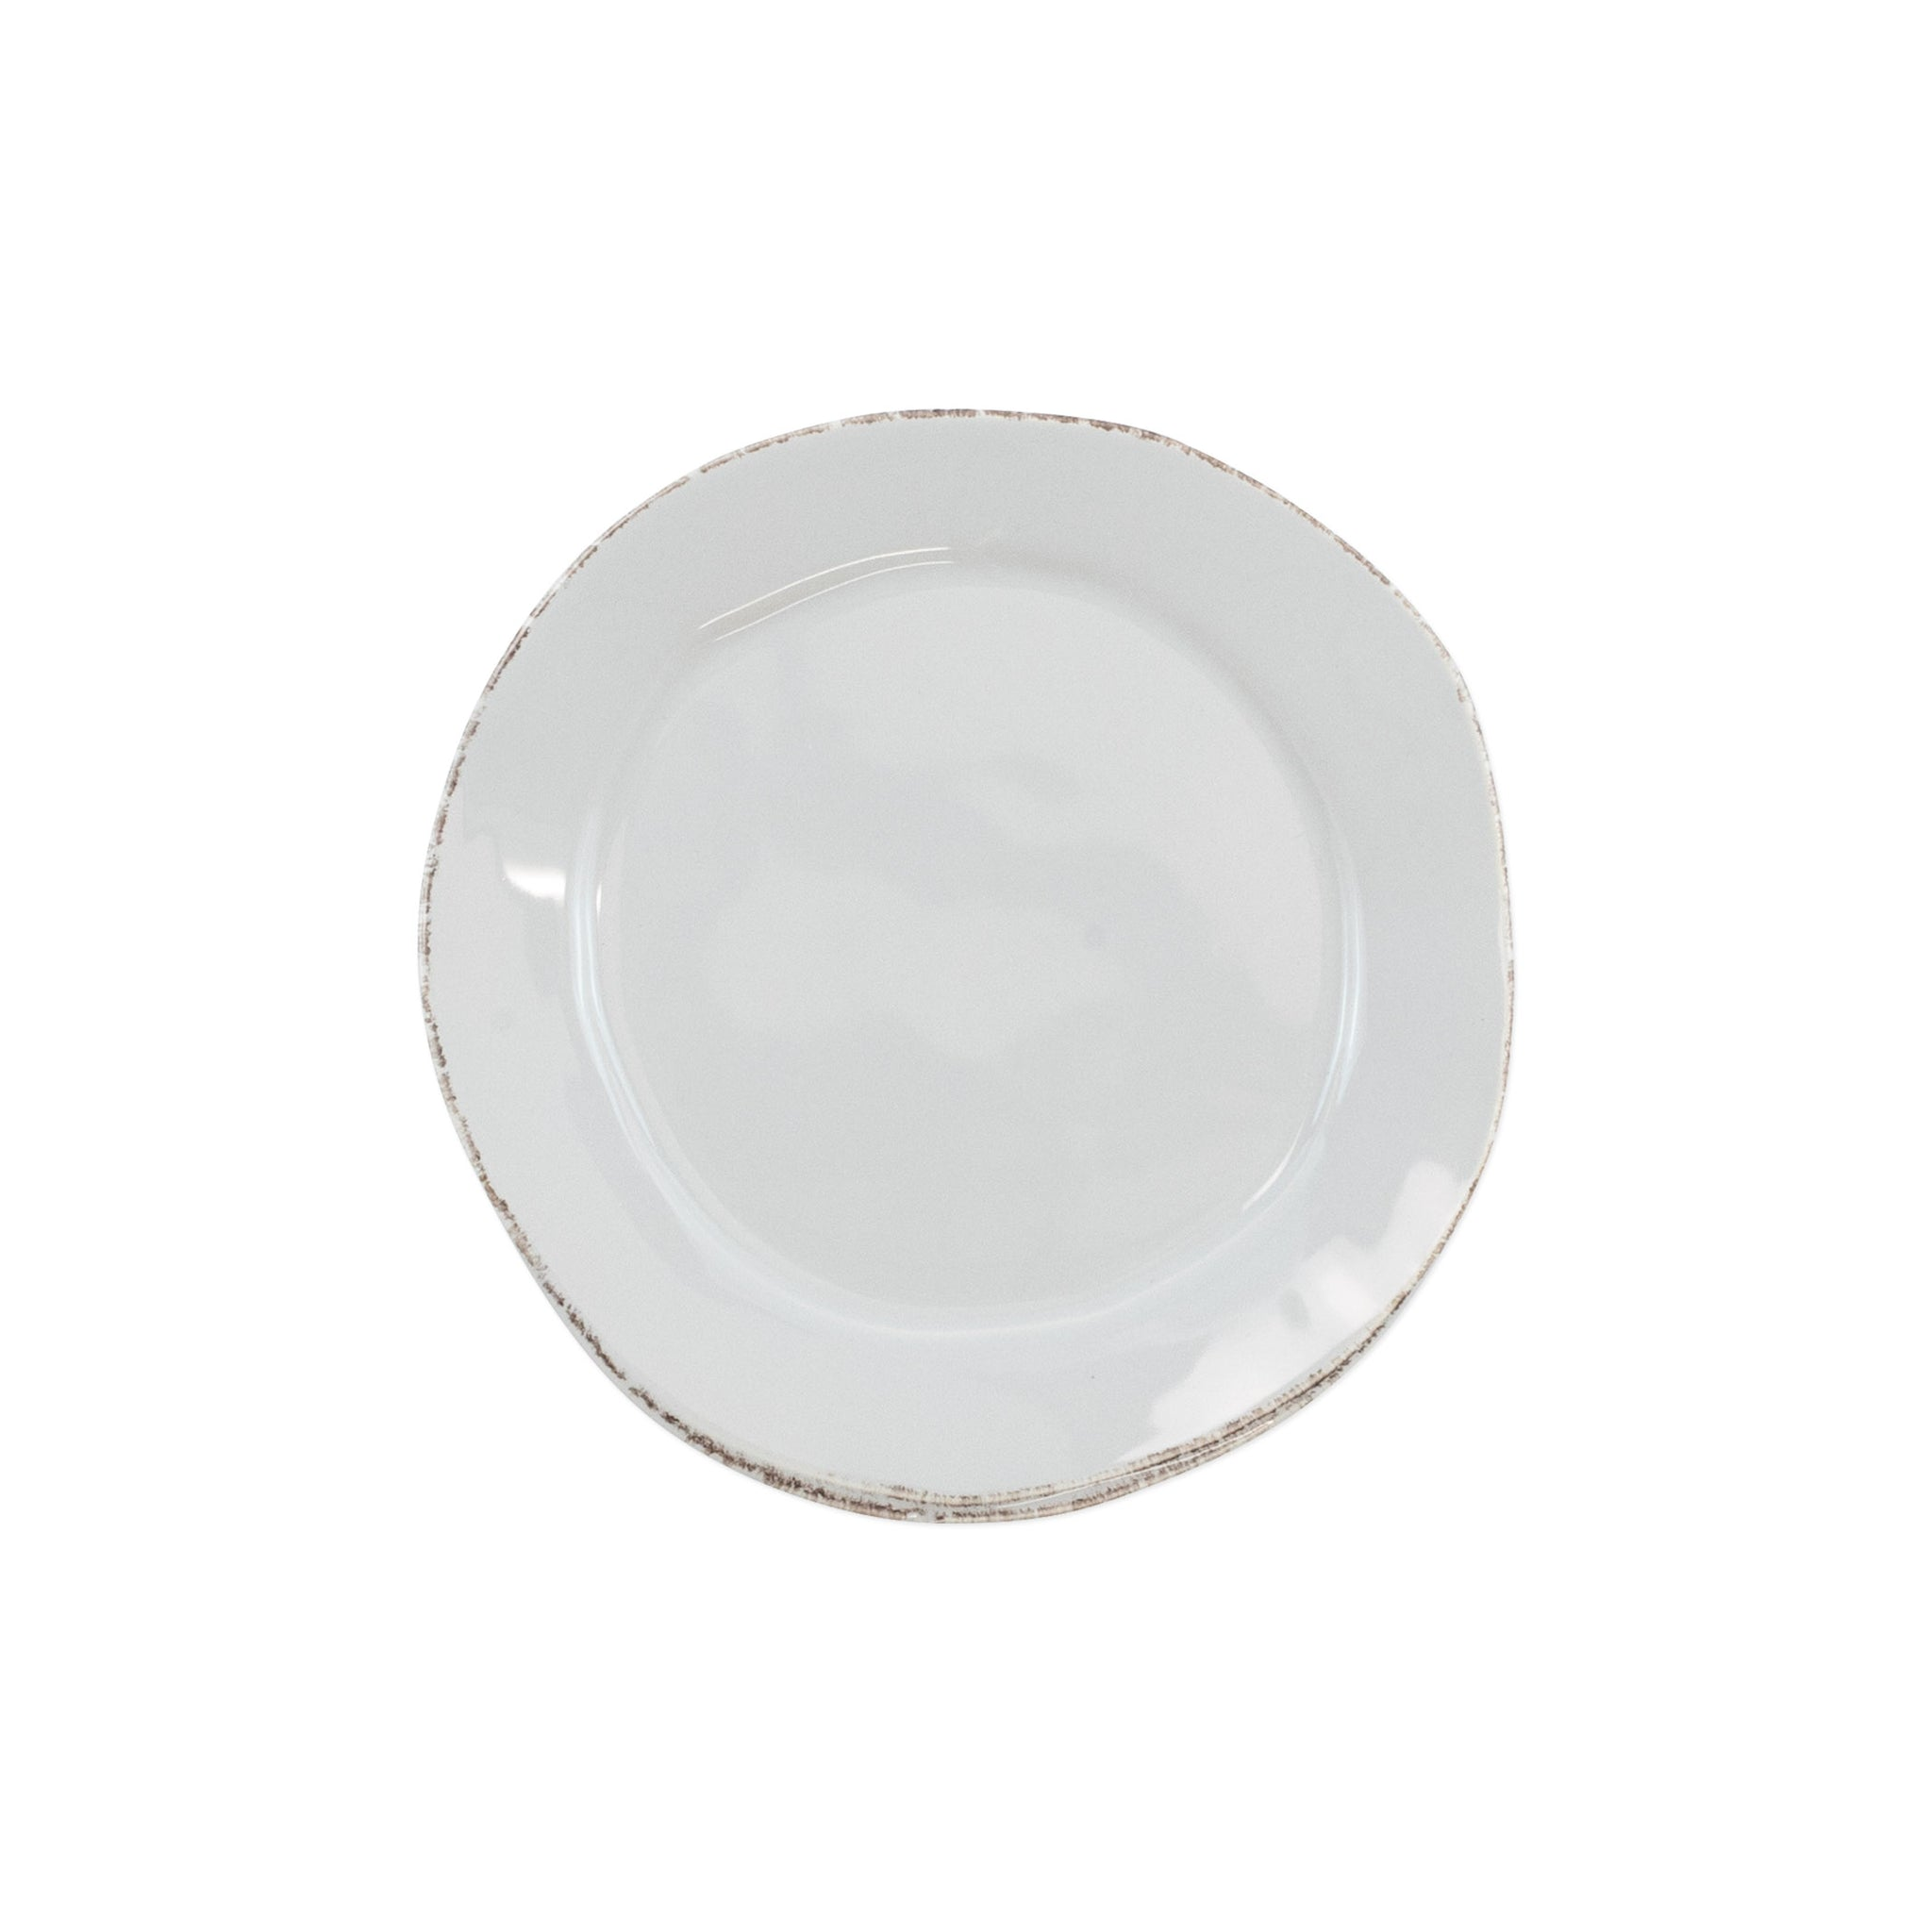 Lastra Canape Plate - Set of 4 - Light Gray